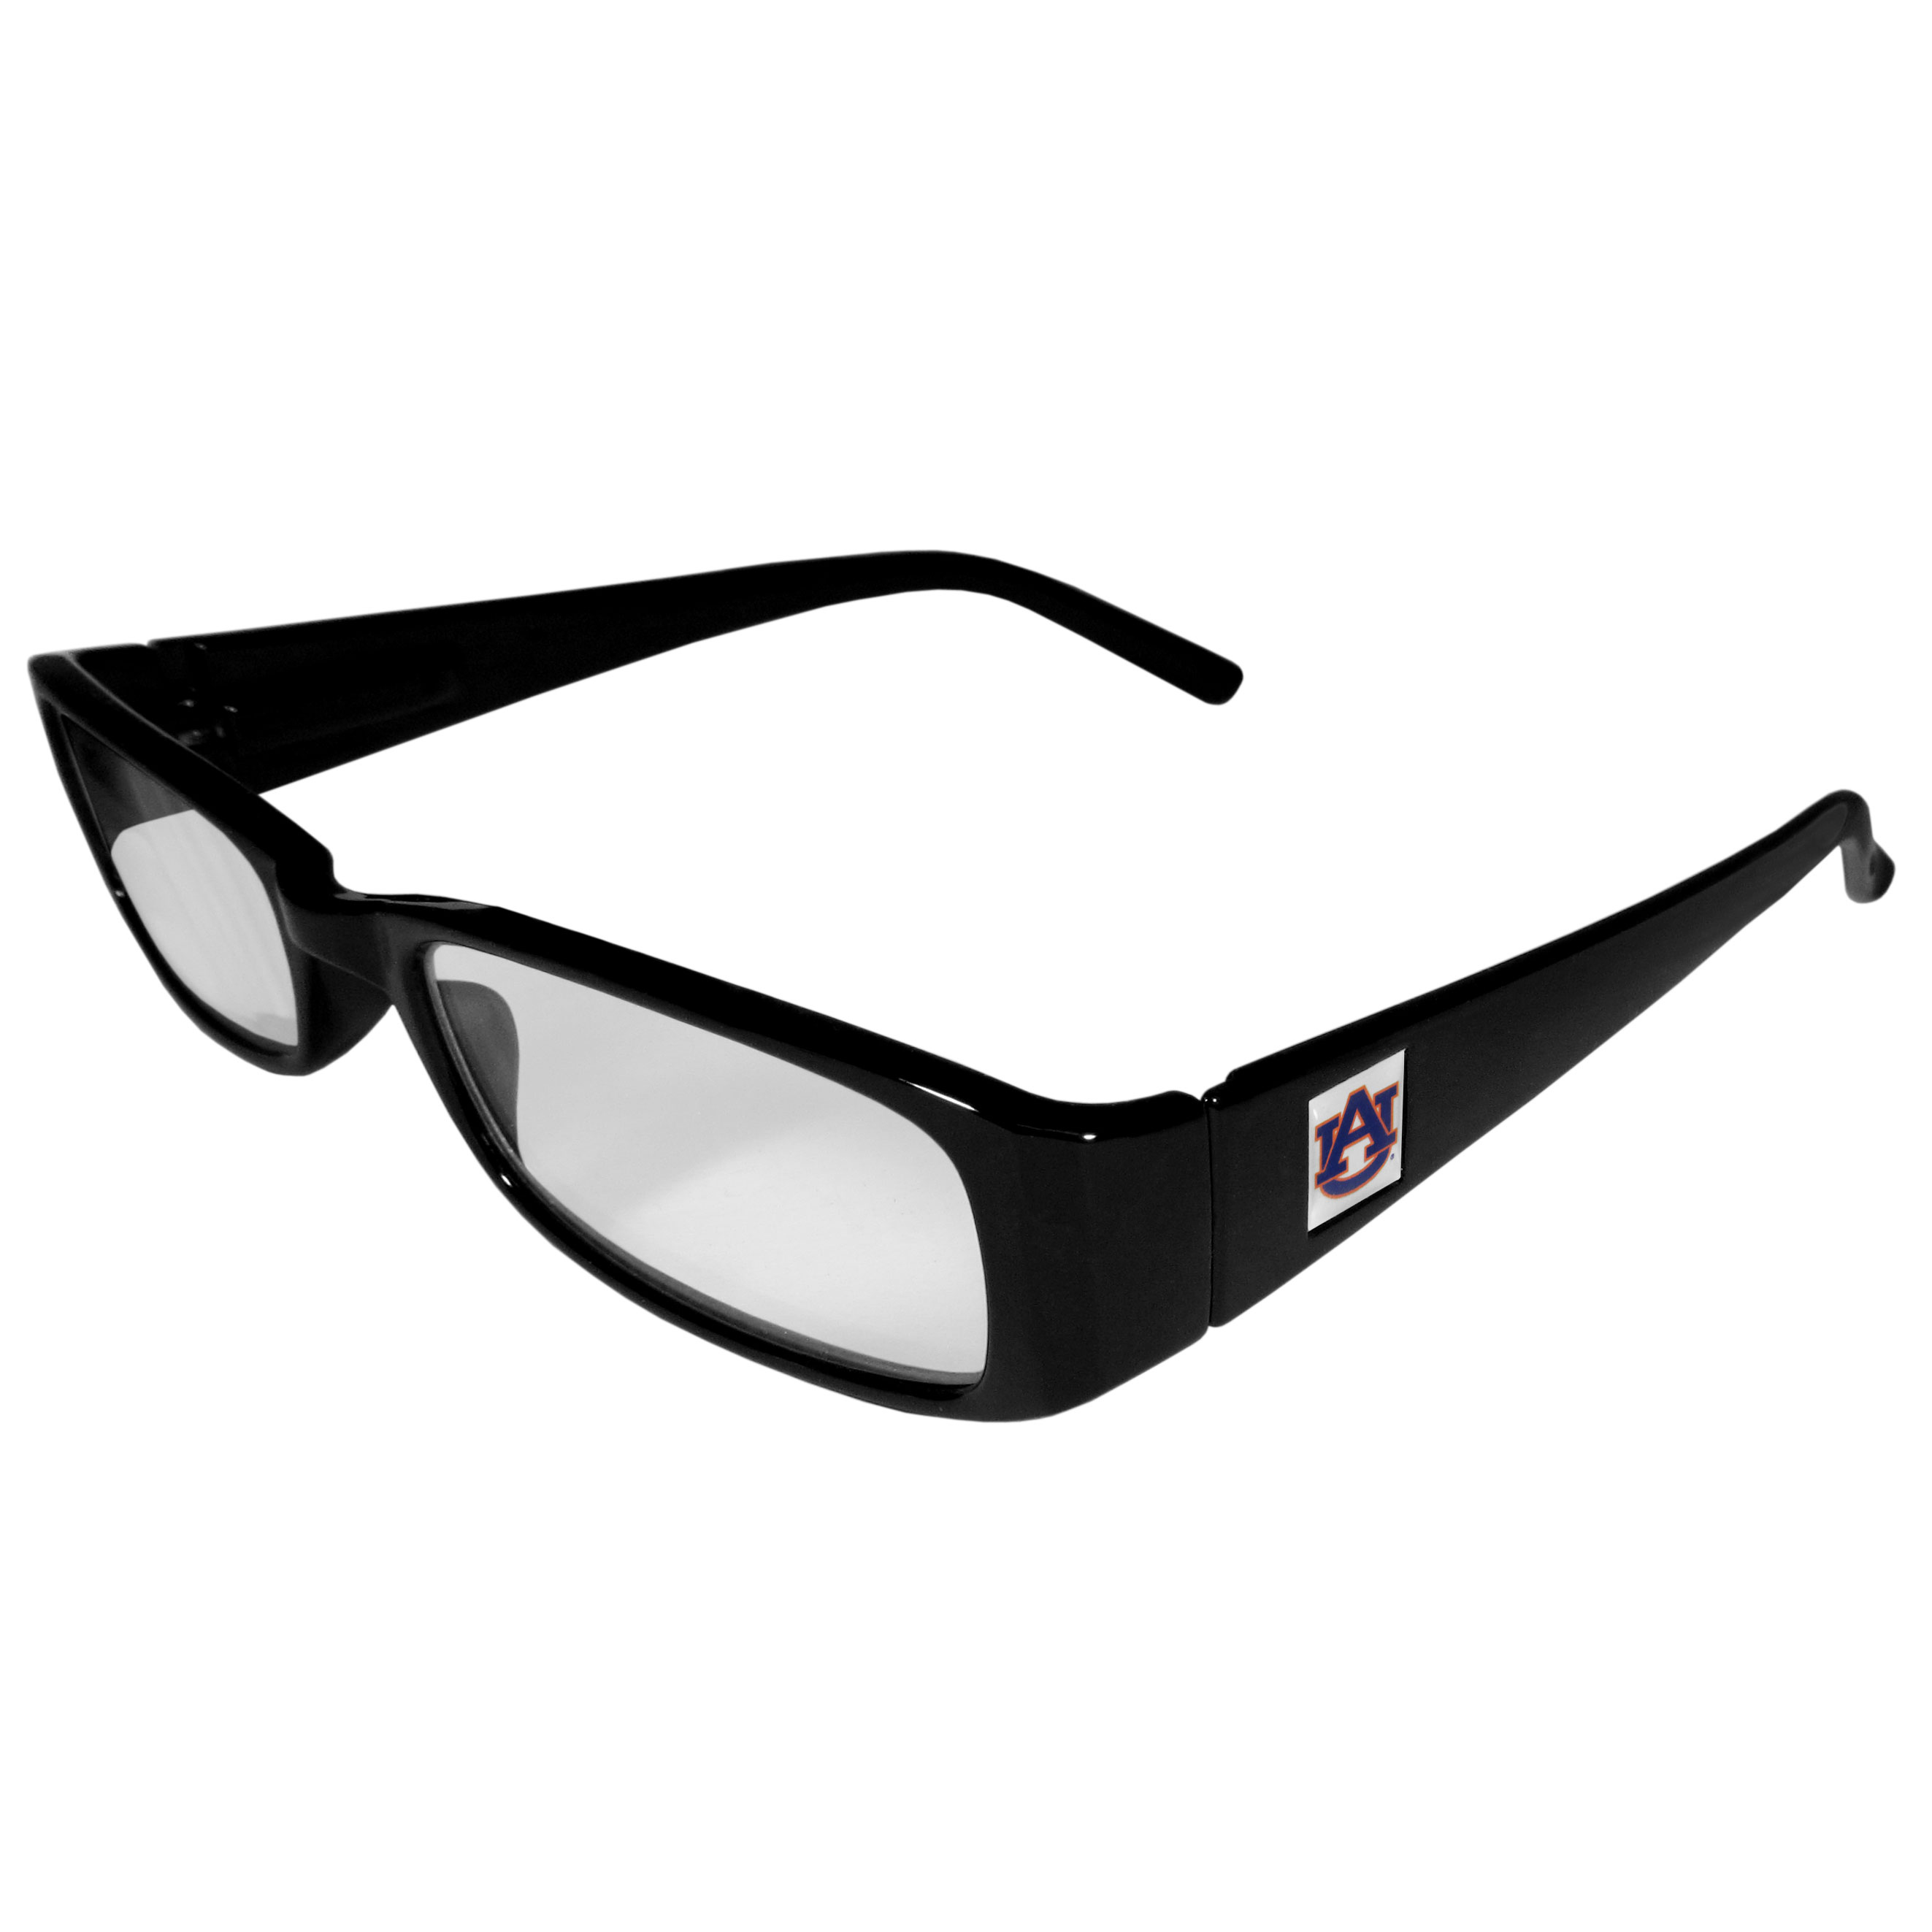 Auburn Tigers Black Reading Glasses +2.25 - Our Auburn Tigers reading glasses are 5.25 inches wide and feature the team logo on each arm. Magnification Power 2.25